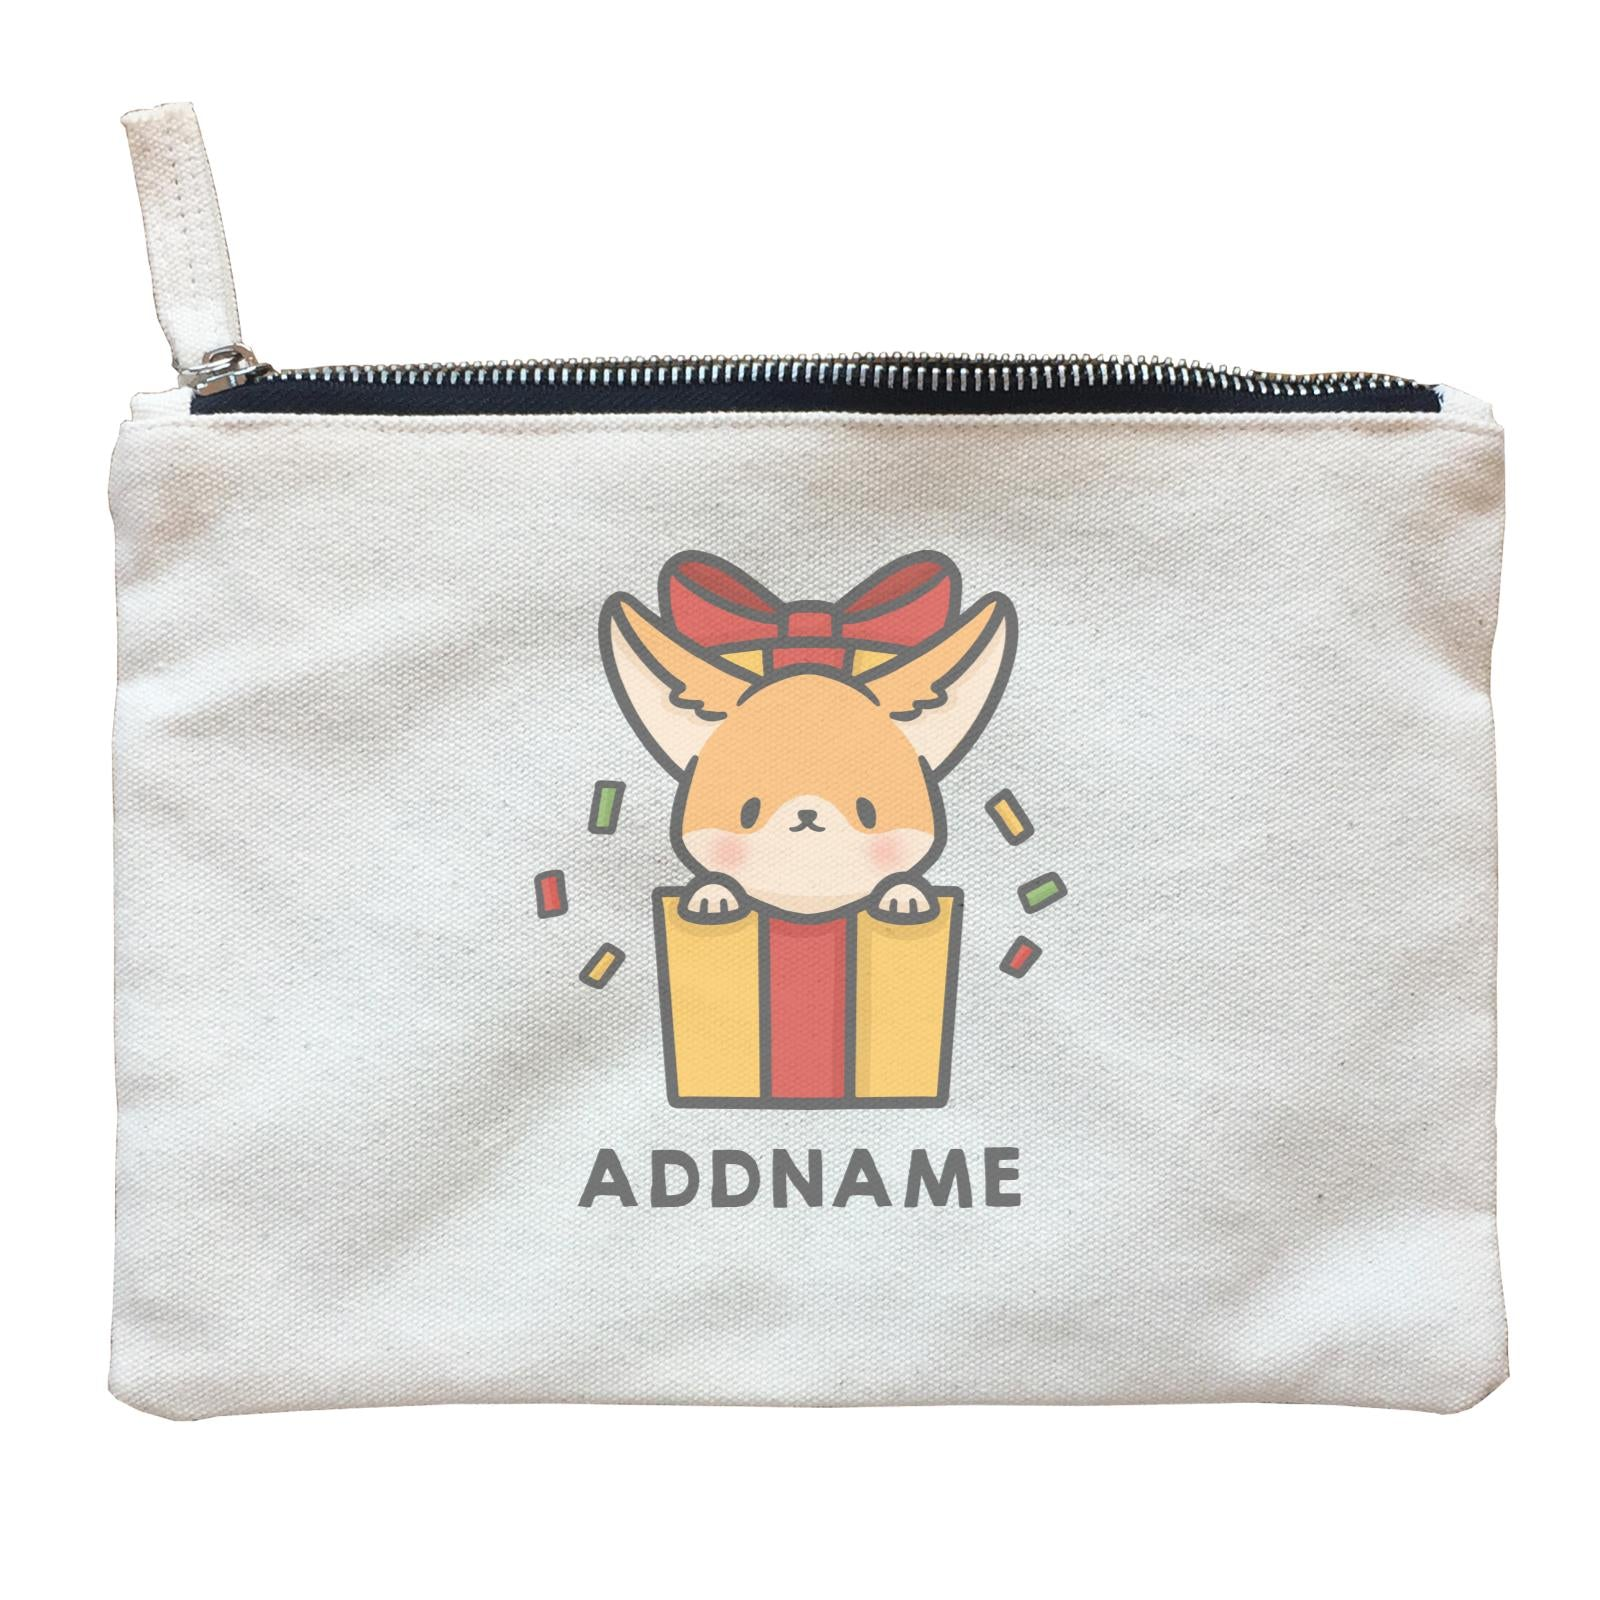 Xmas Cute Dog In Gift Box Addname Accessories Zipper Pouch